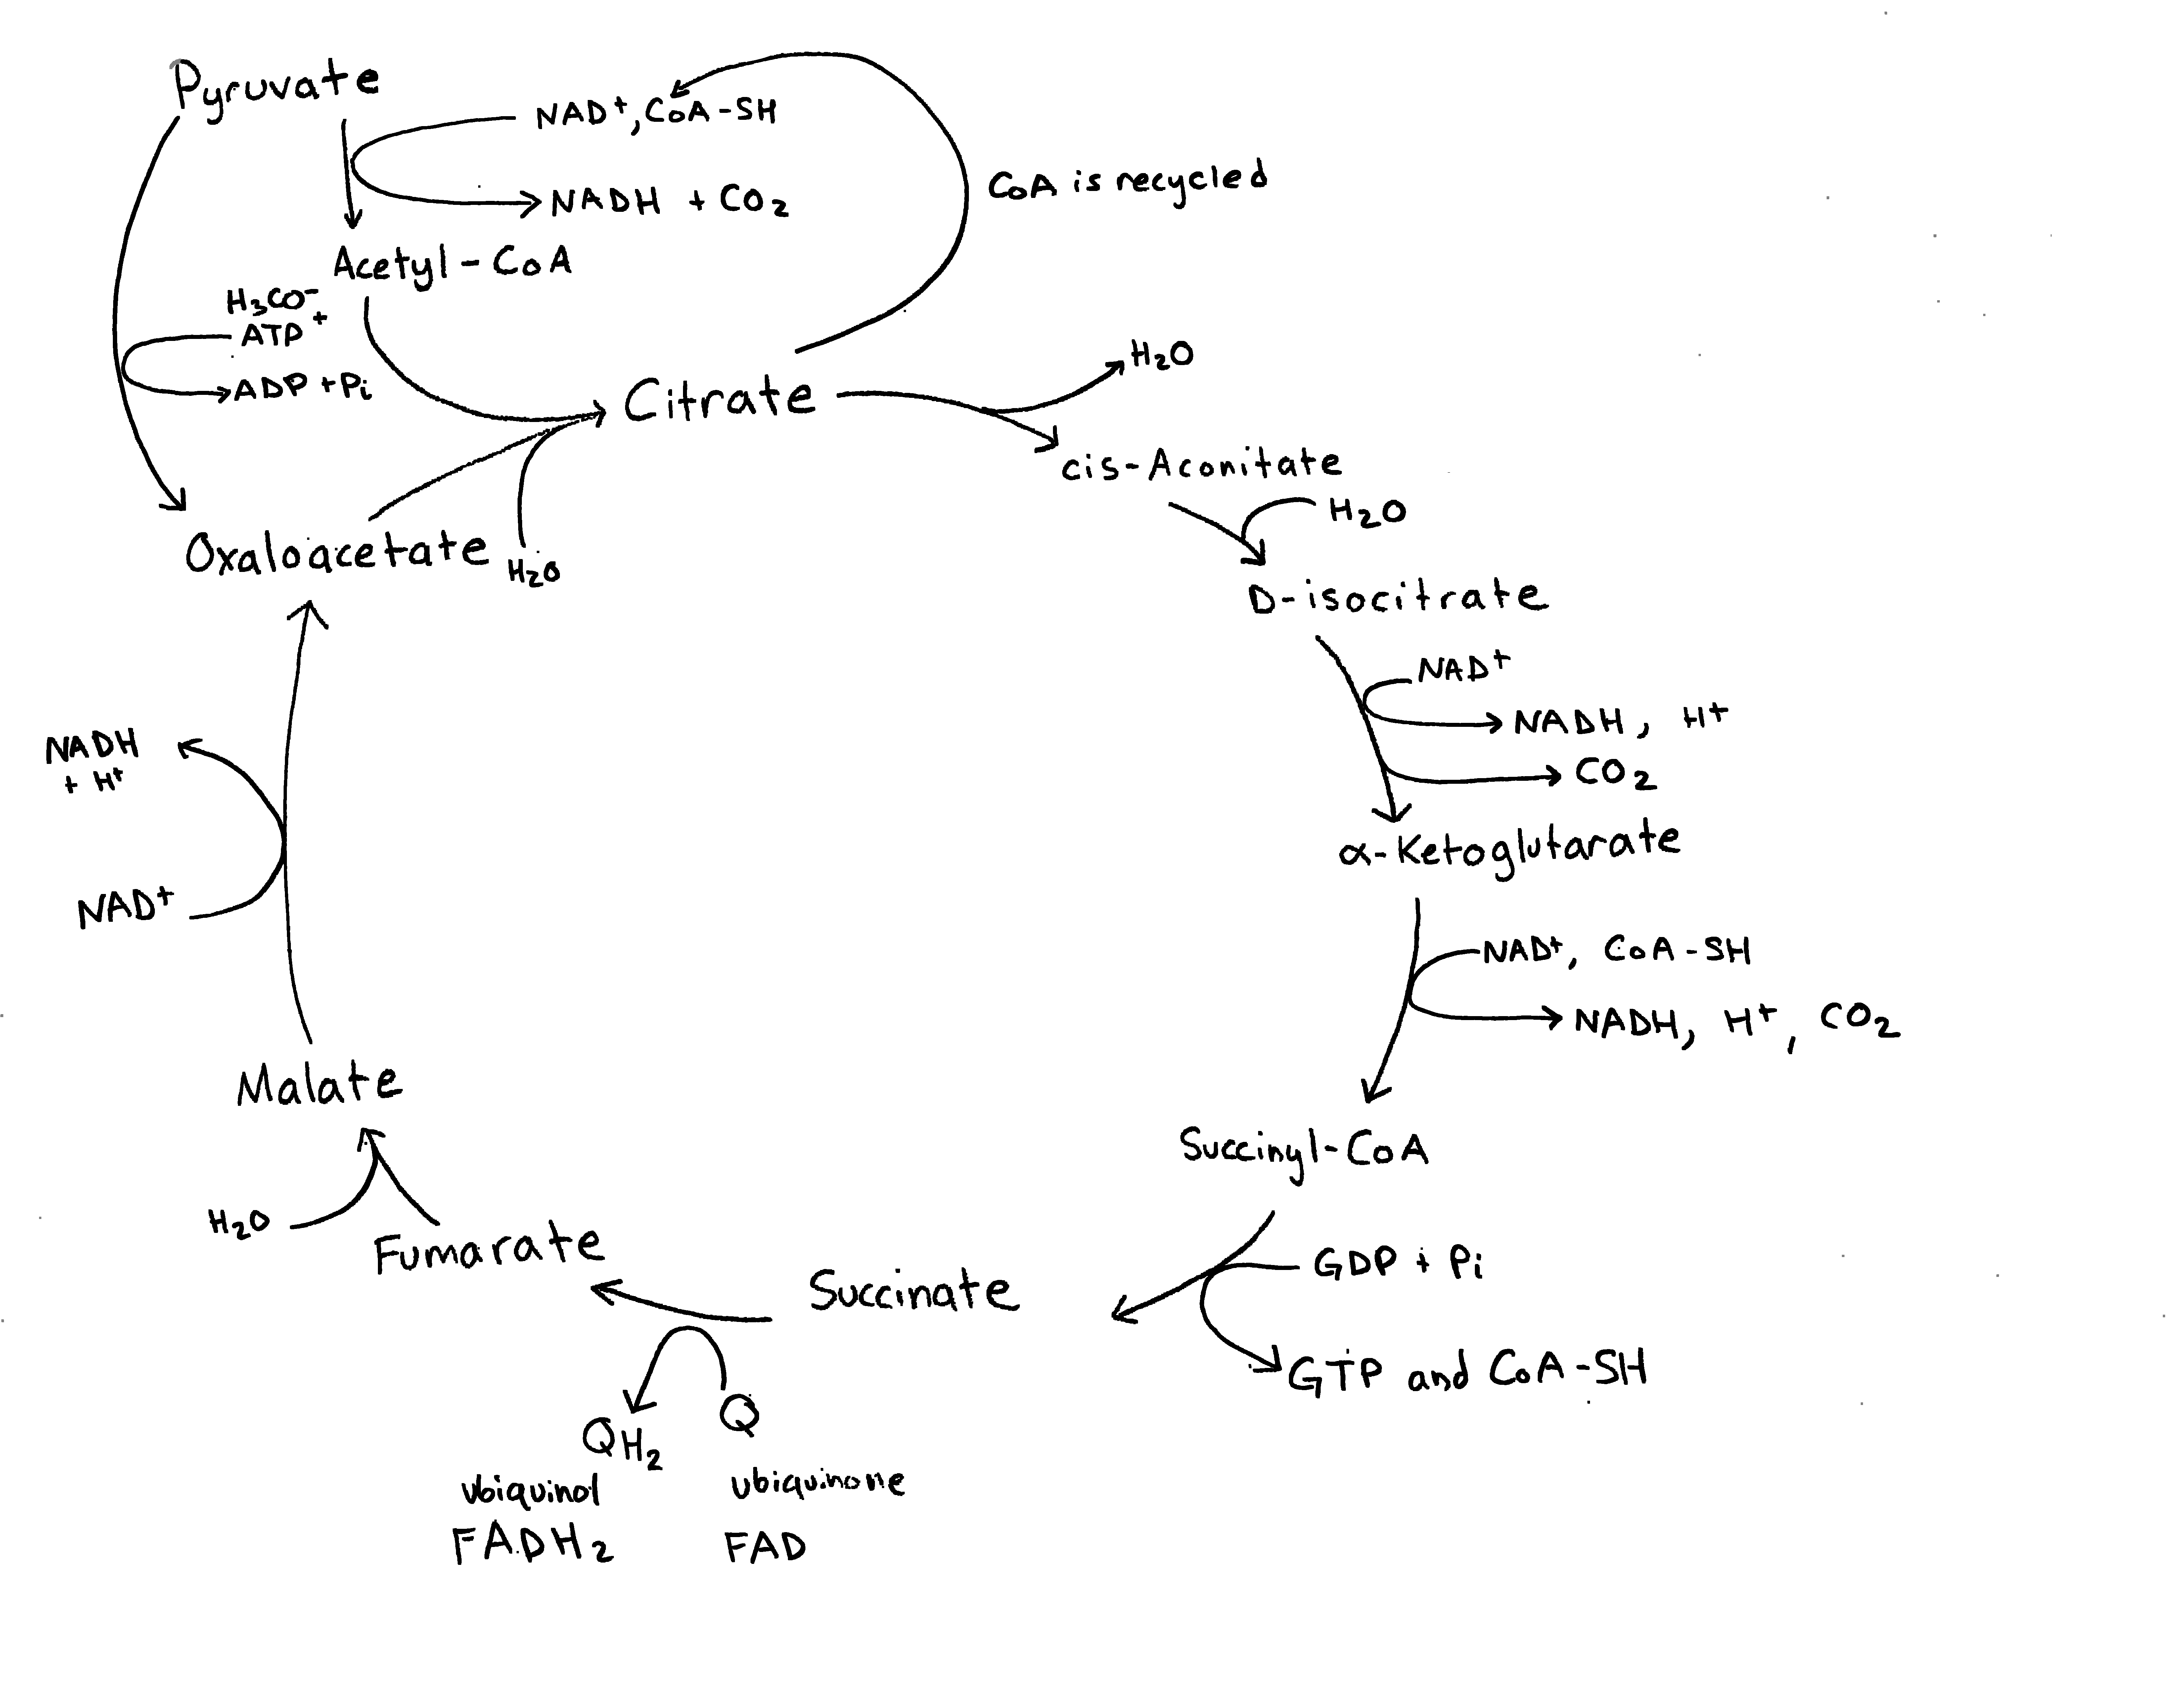 the image shows the krebs cycle with nad, adp, gdp, h2o, and